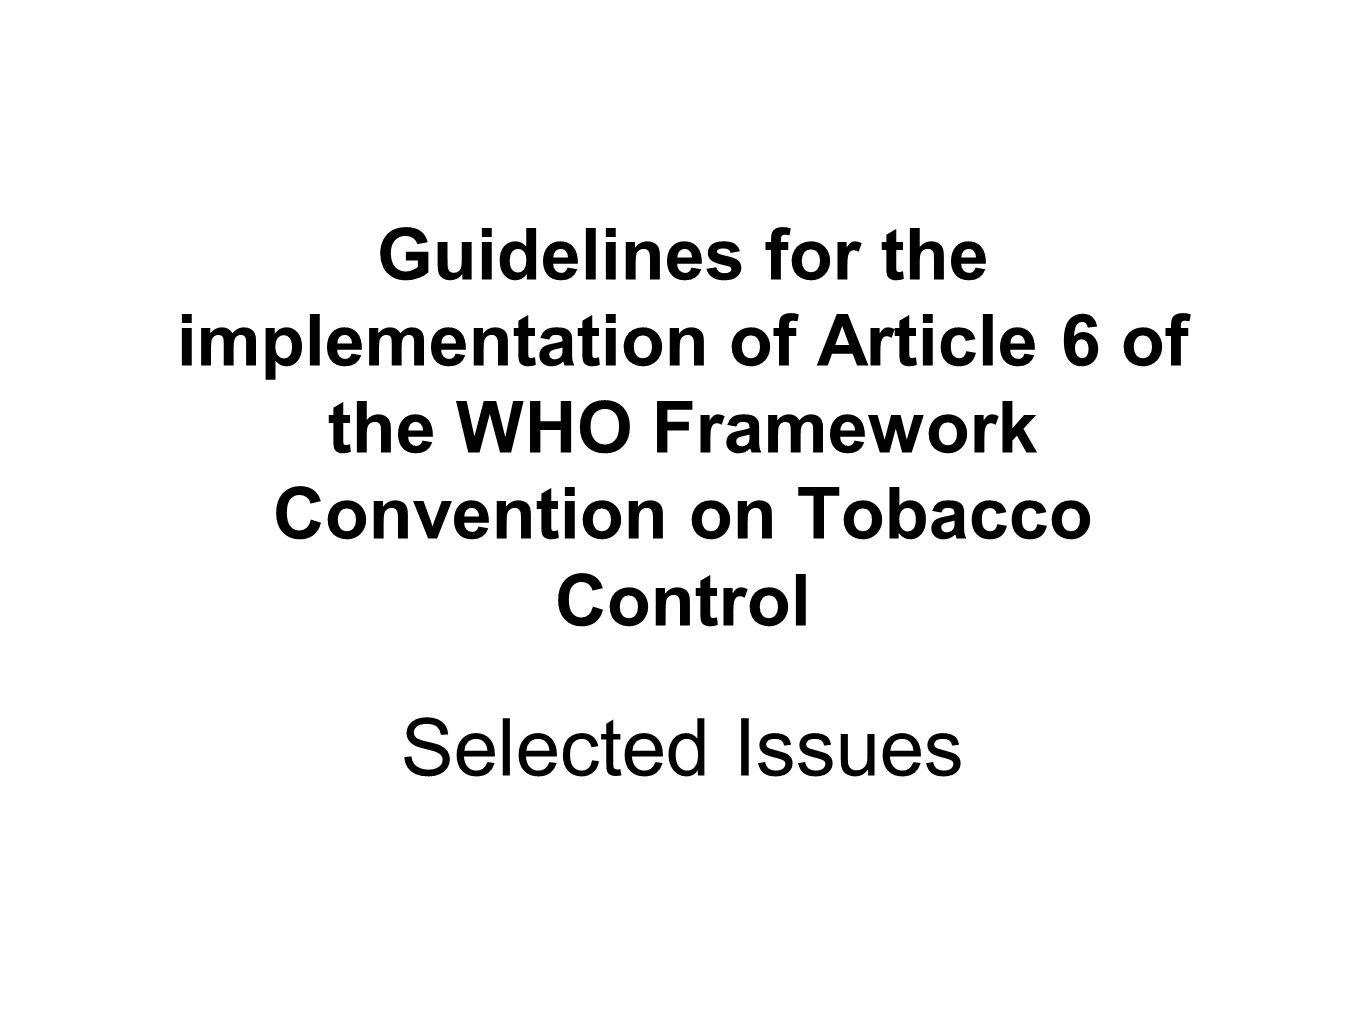 Guidelines for the implementation of Article 6 of the WHO Framework Convention on Tobacco Control Selected Issues